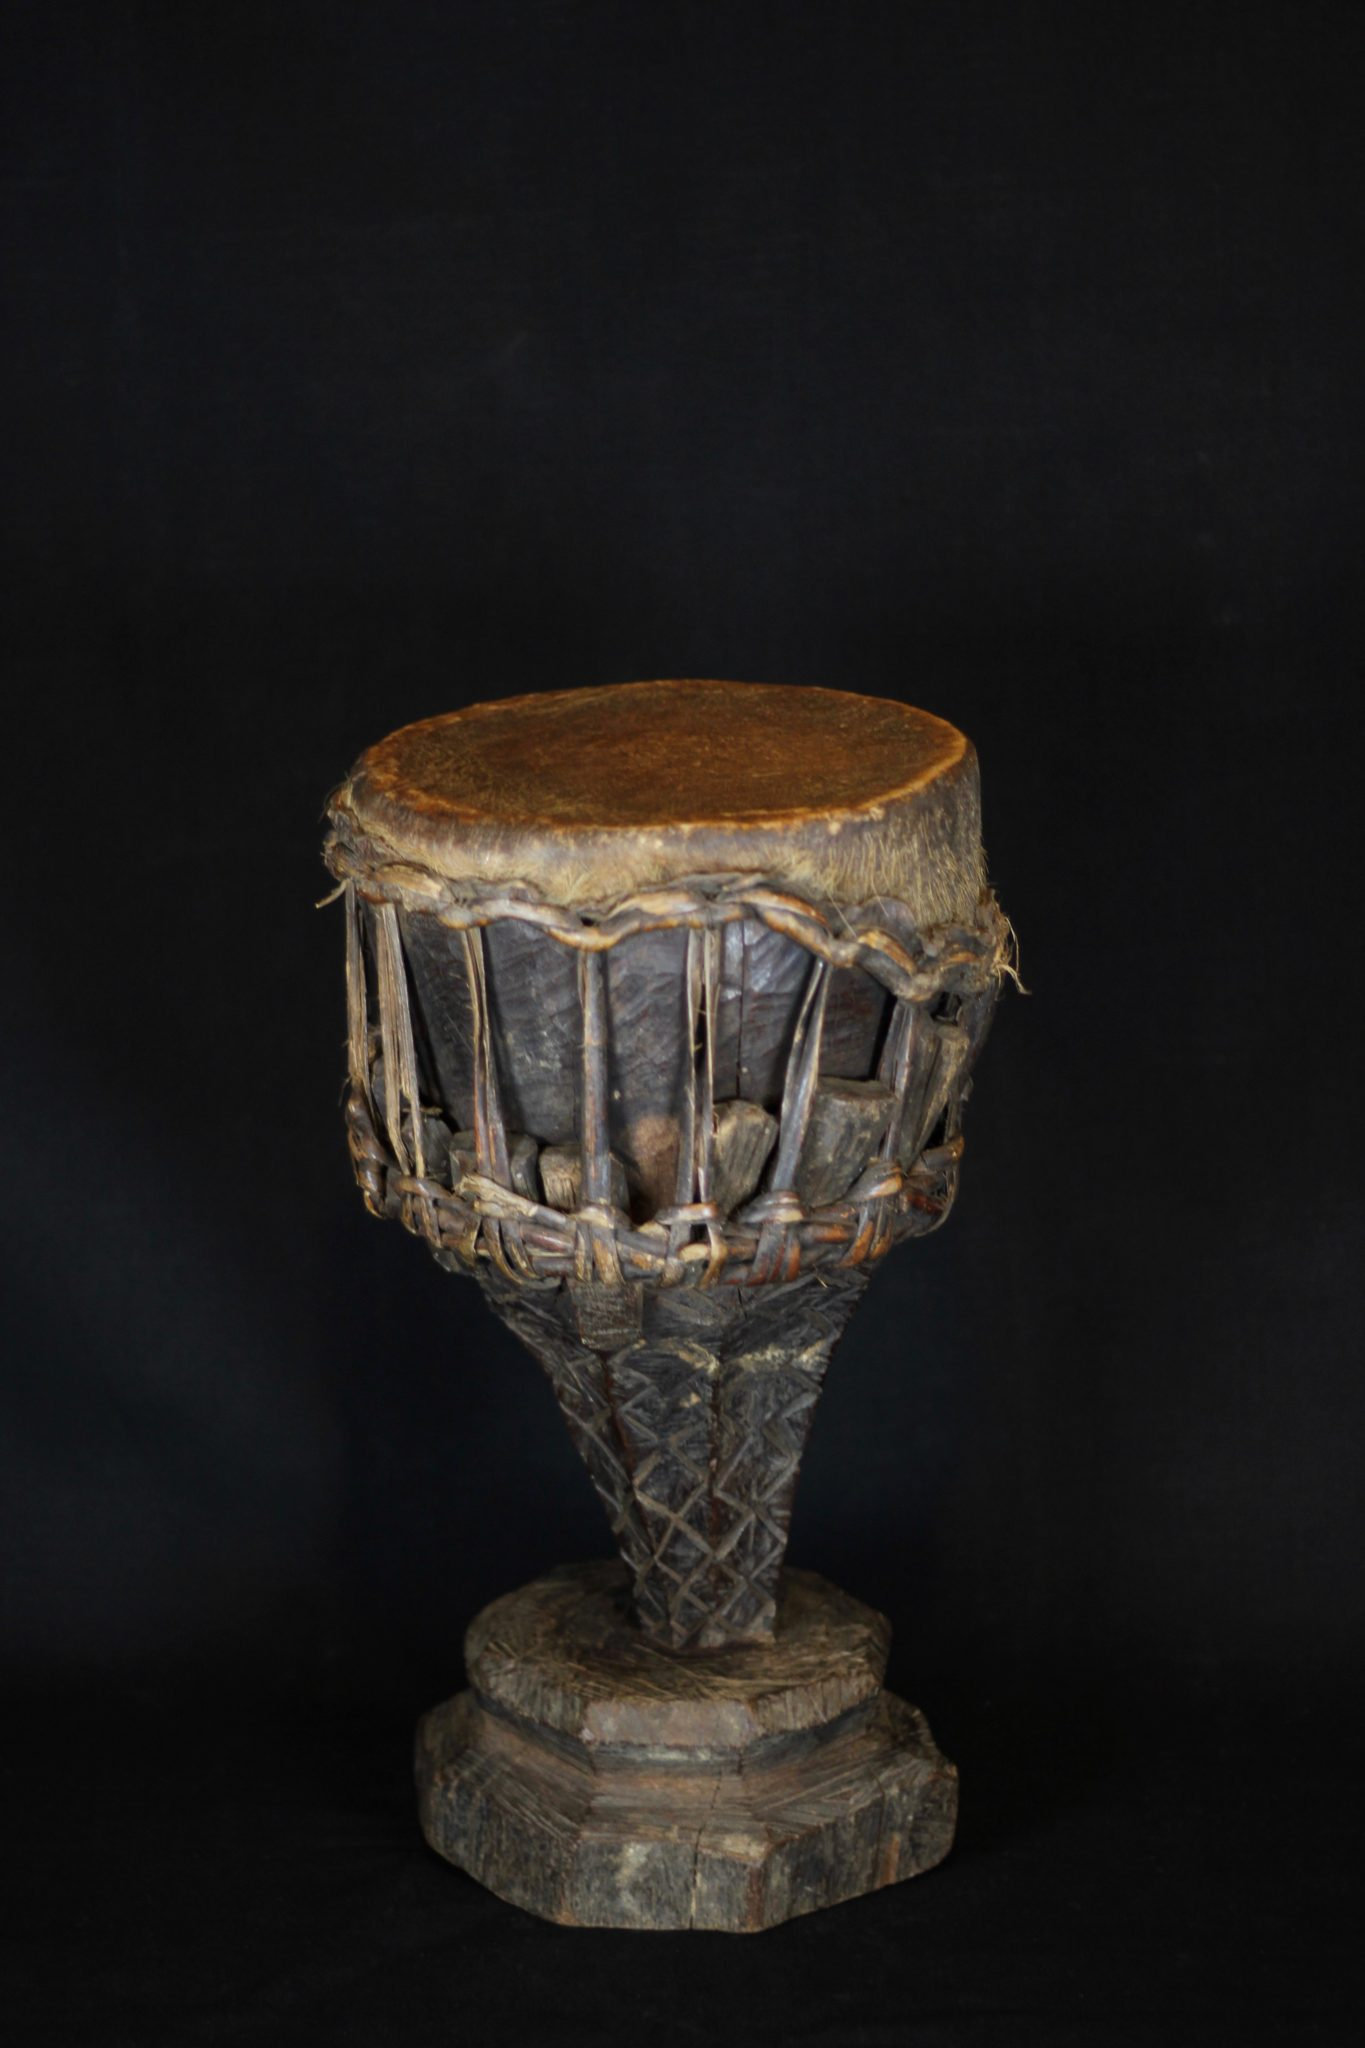 """Shaman Drum, Sumba Island, Indonesia, Early to mid 20th c, Animal skin stretched over wood, Used by shaman to initiate and maintain a trance state during rituals, 17 ½"""" x 10 ½' x 10"""", $490."""